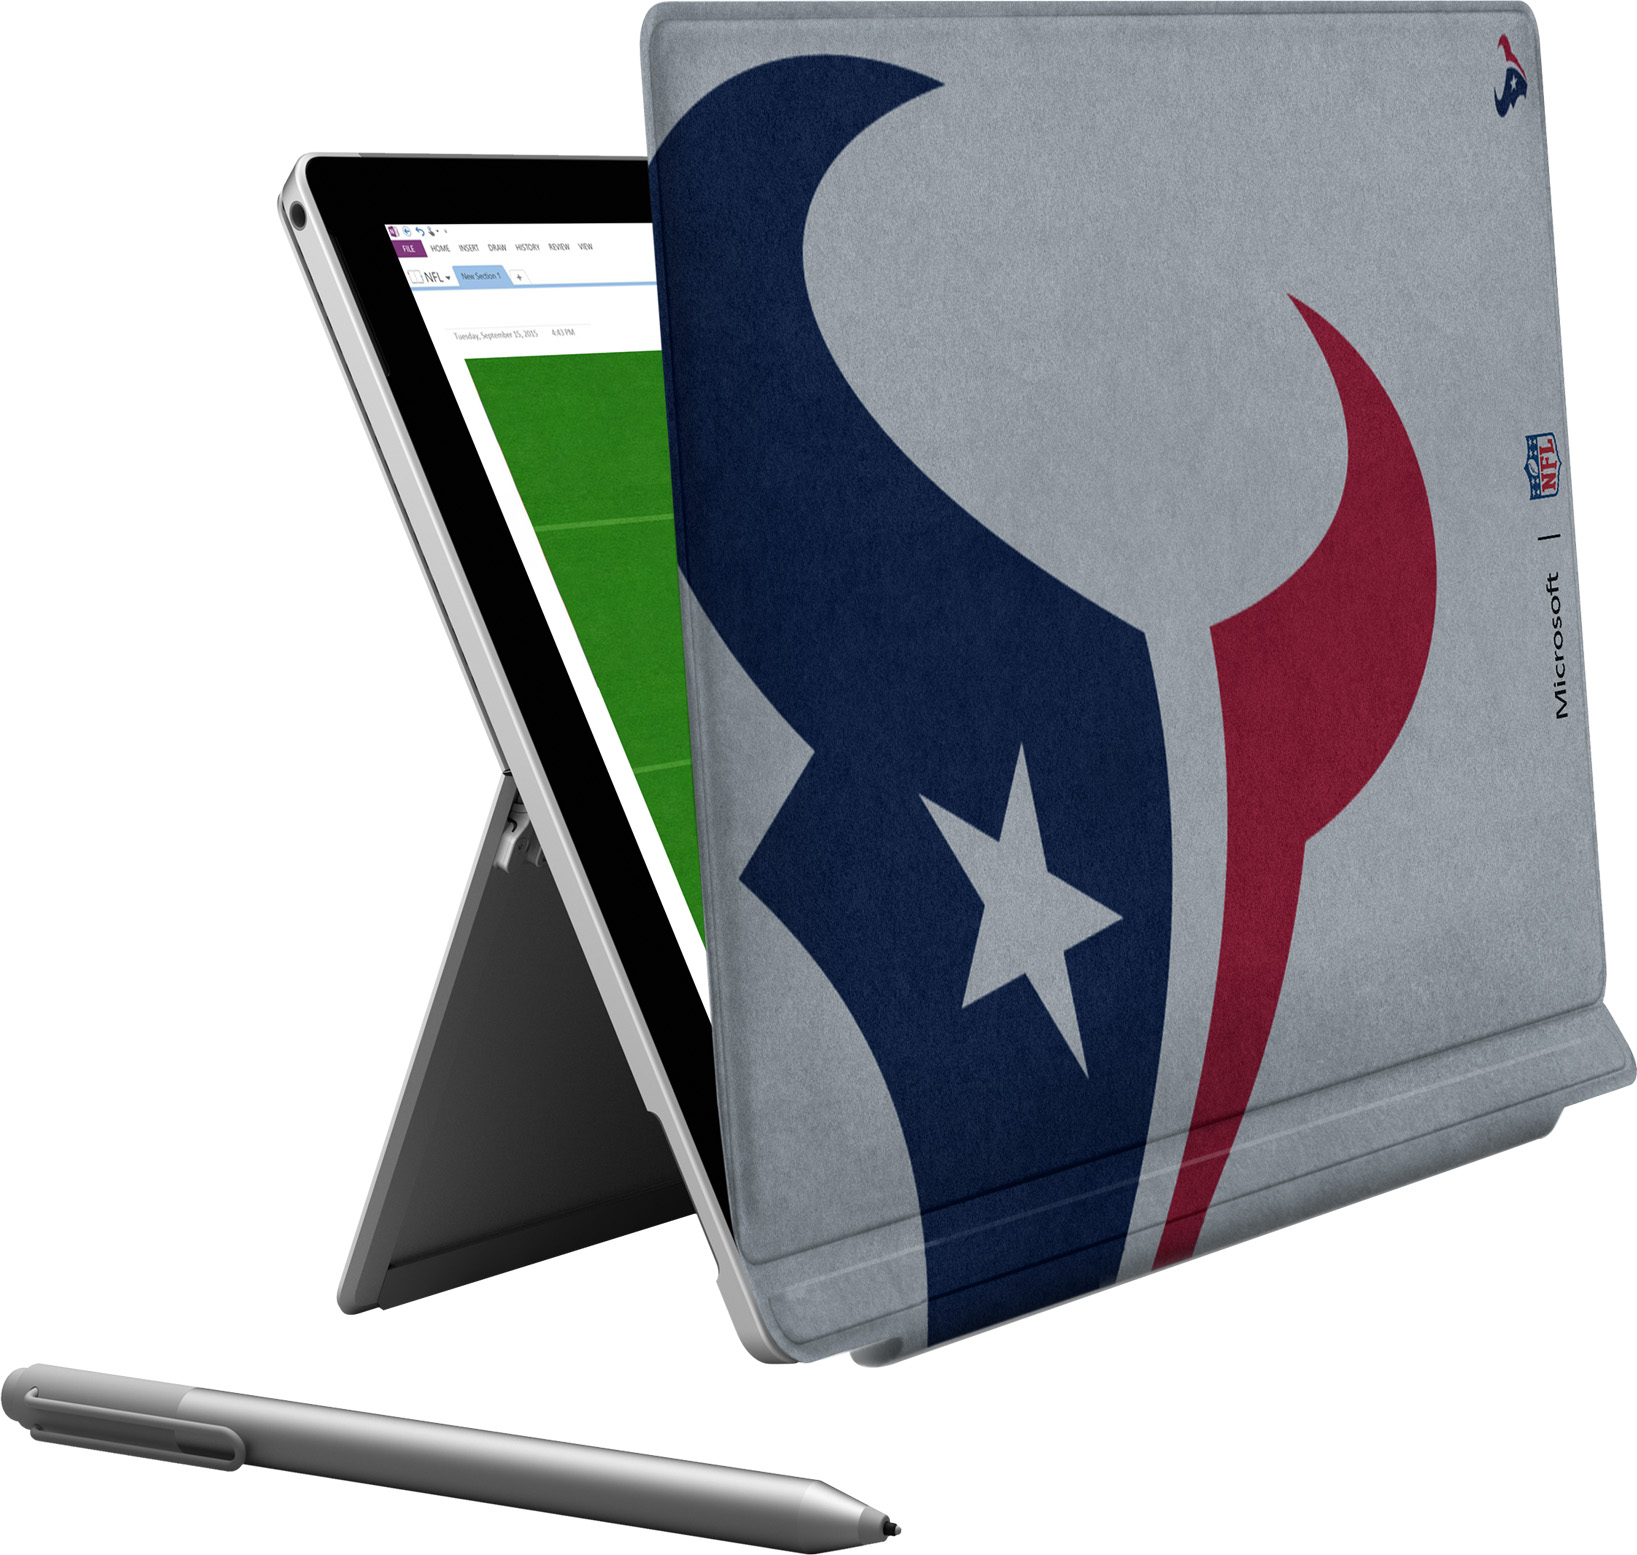 Microsoft Surface Pro 4 Houston Texans Type Cover